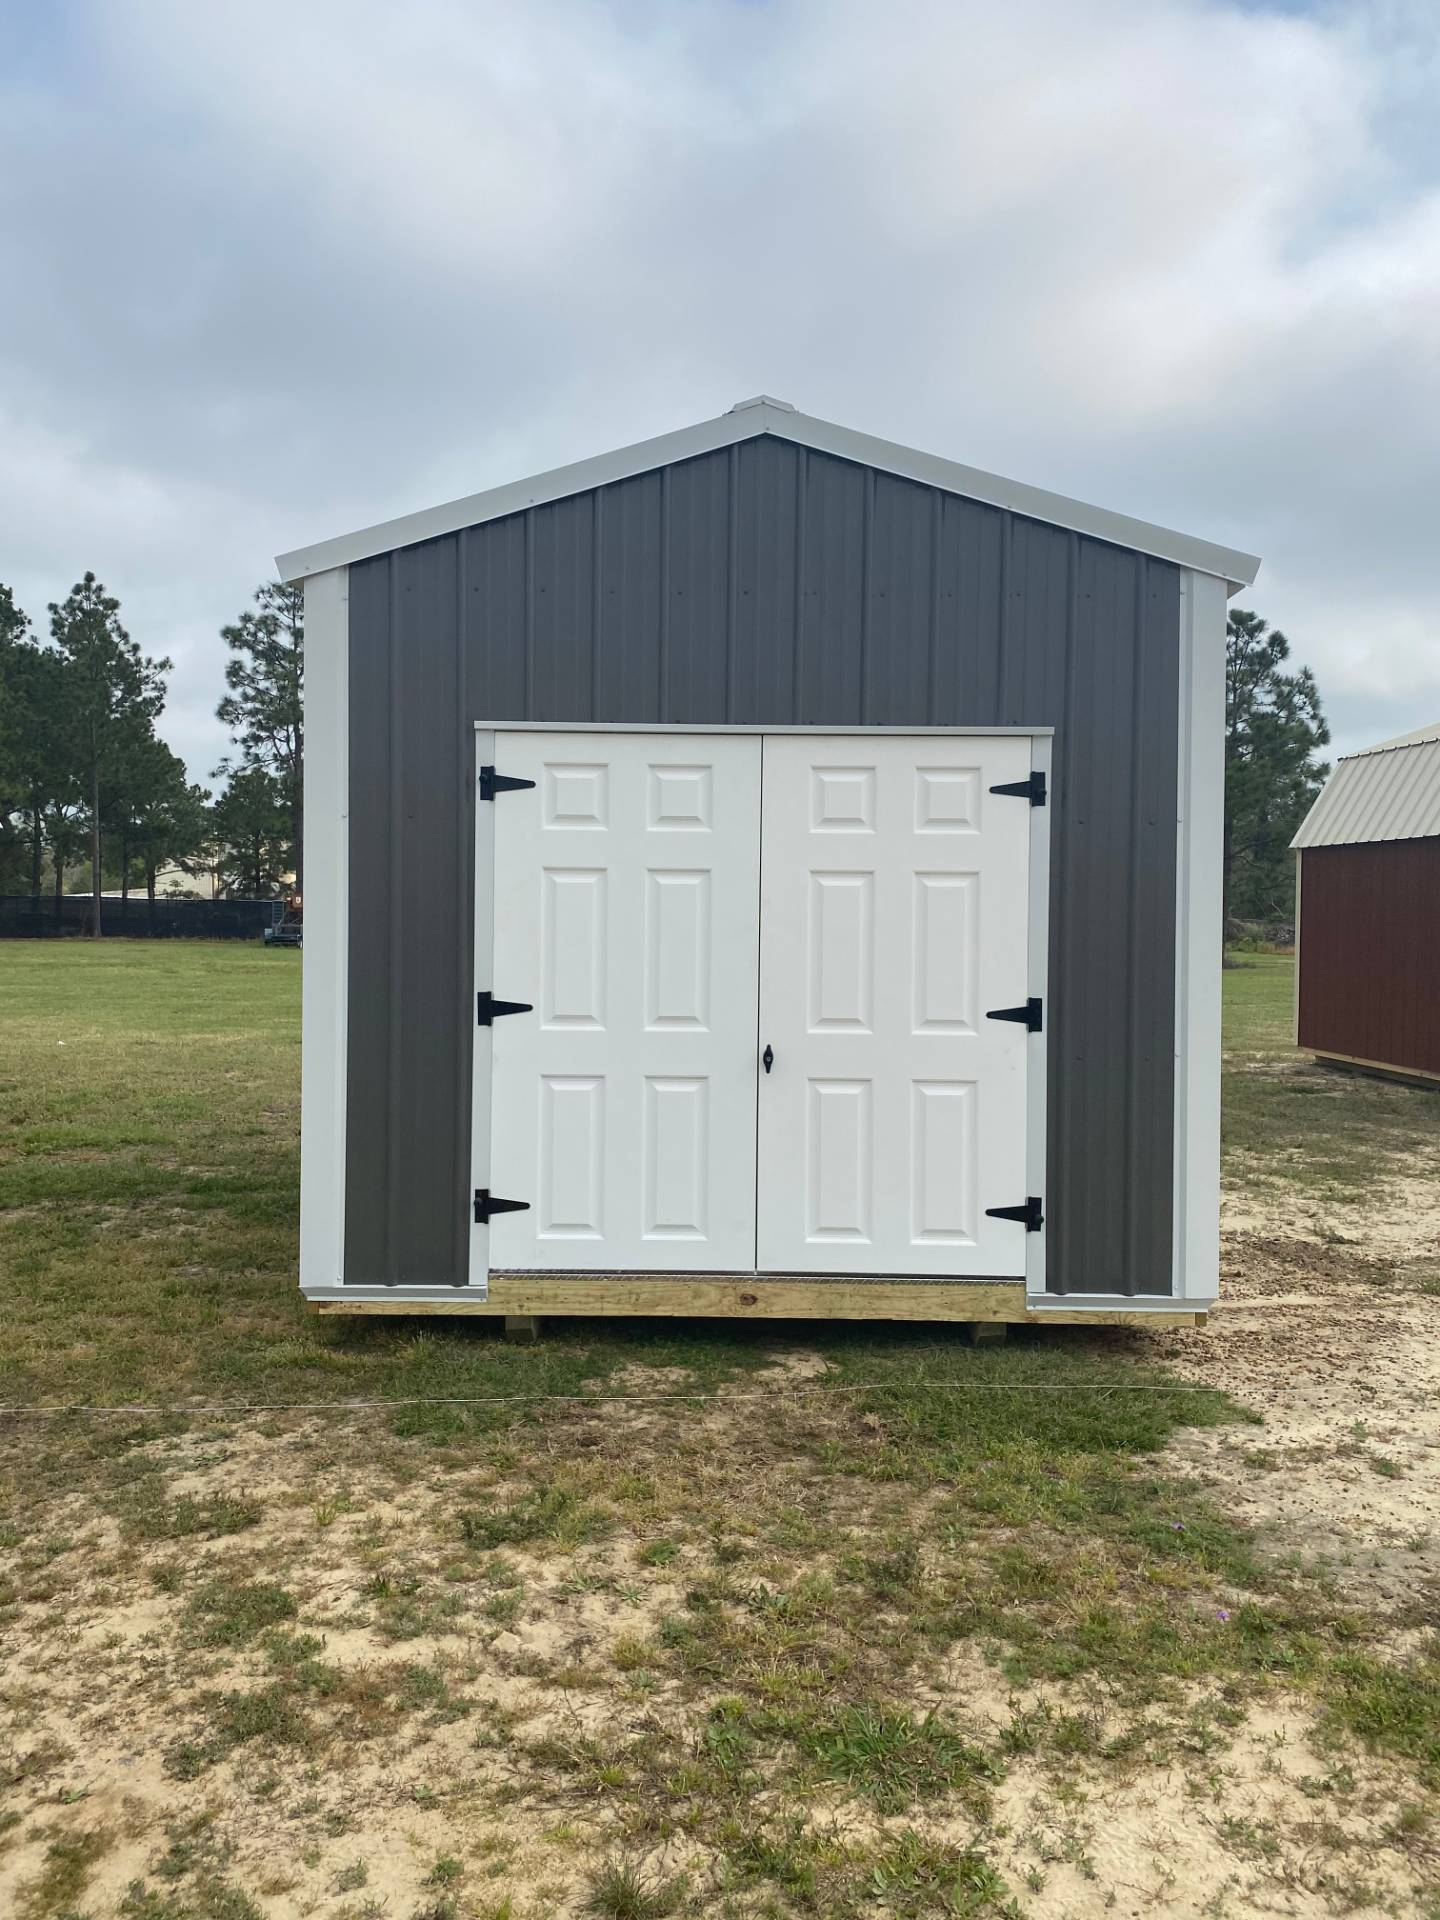 2019 PREMIER PORTABLE BUILDINGS MUTX-103057-1016-022420 in Tifton, Georgia - Photo 1